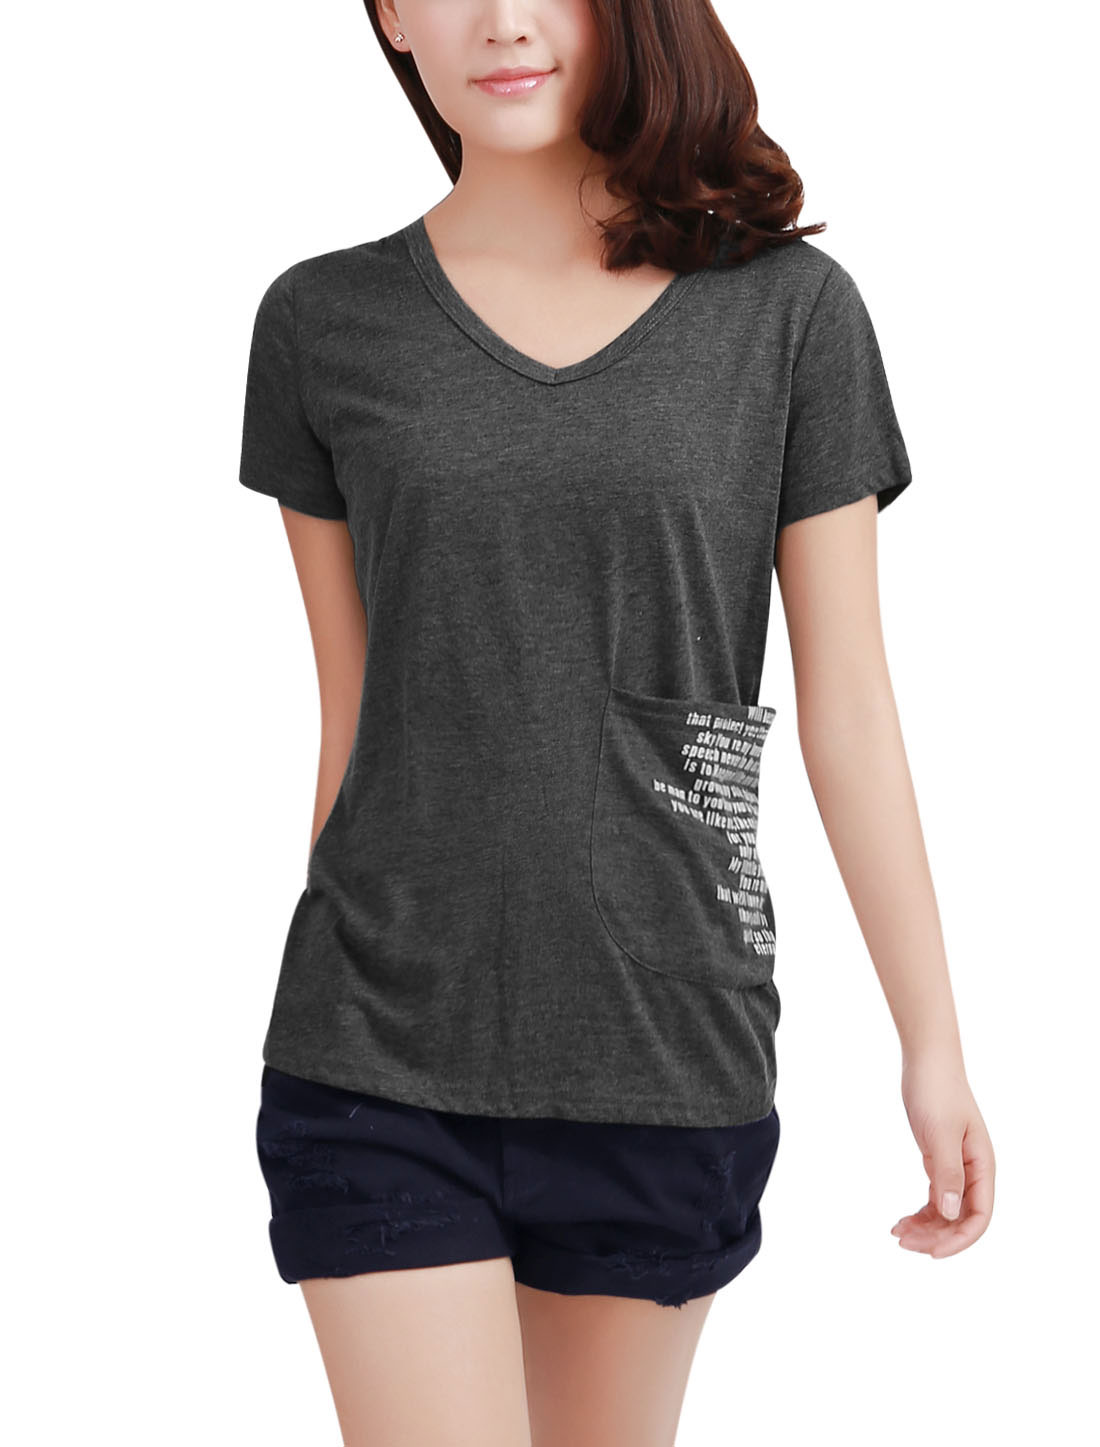 Ladies Chic V Neck Short Sleeve Front Pockets Dark Gray Tee Shirt S